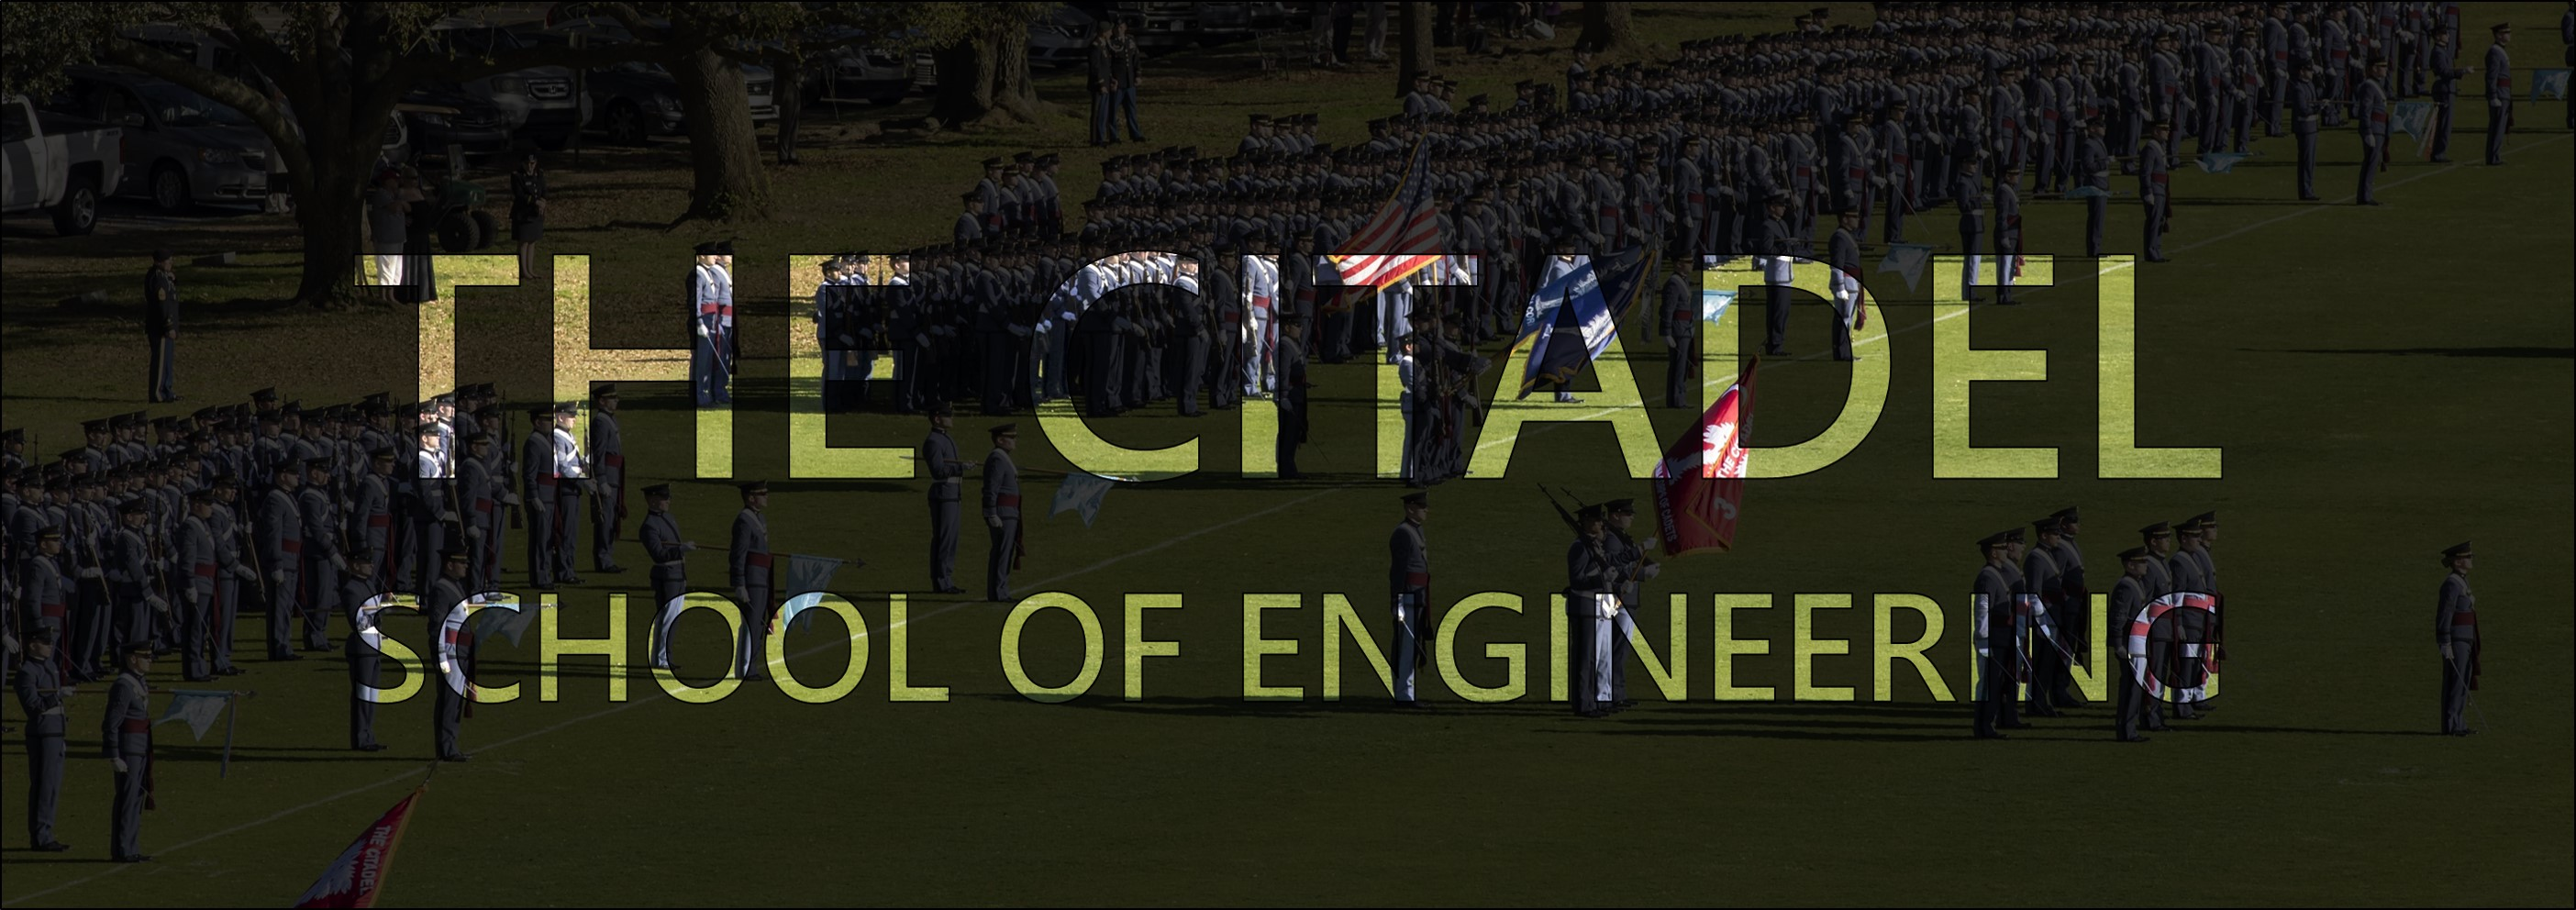 Engineering cadets